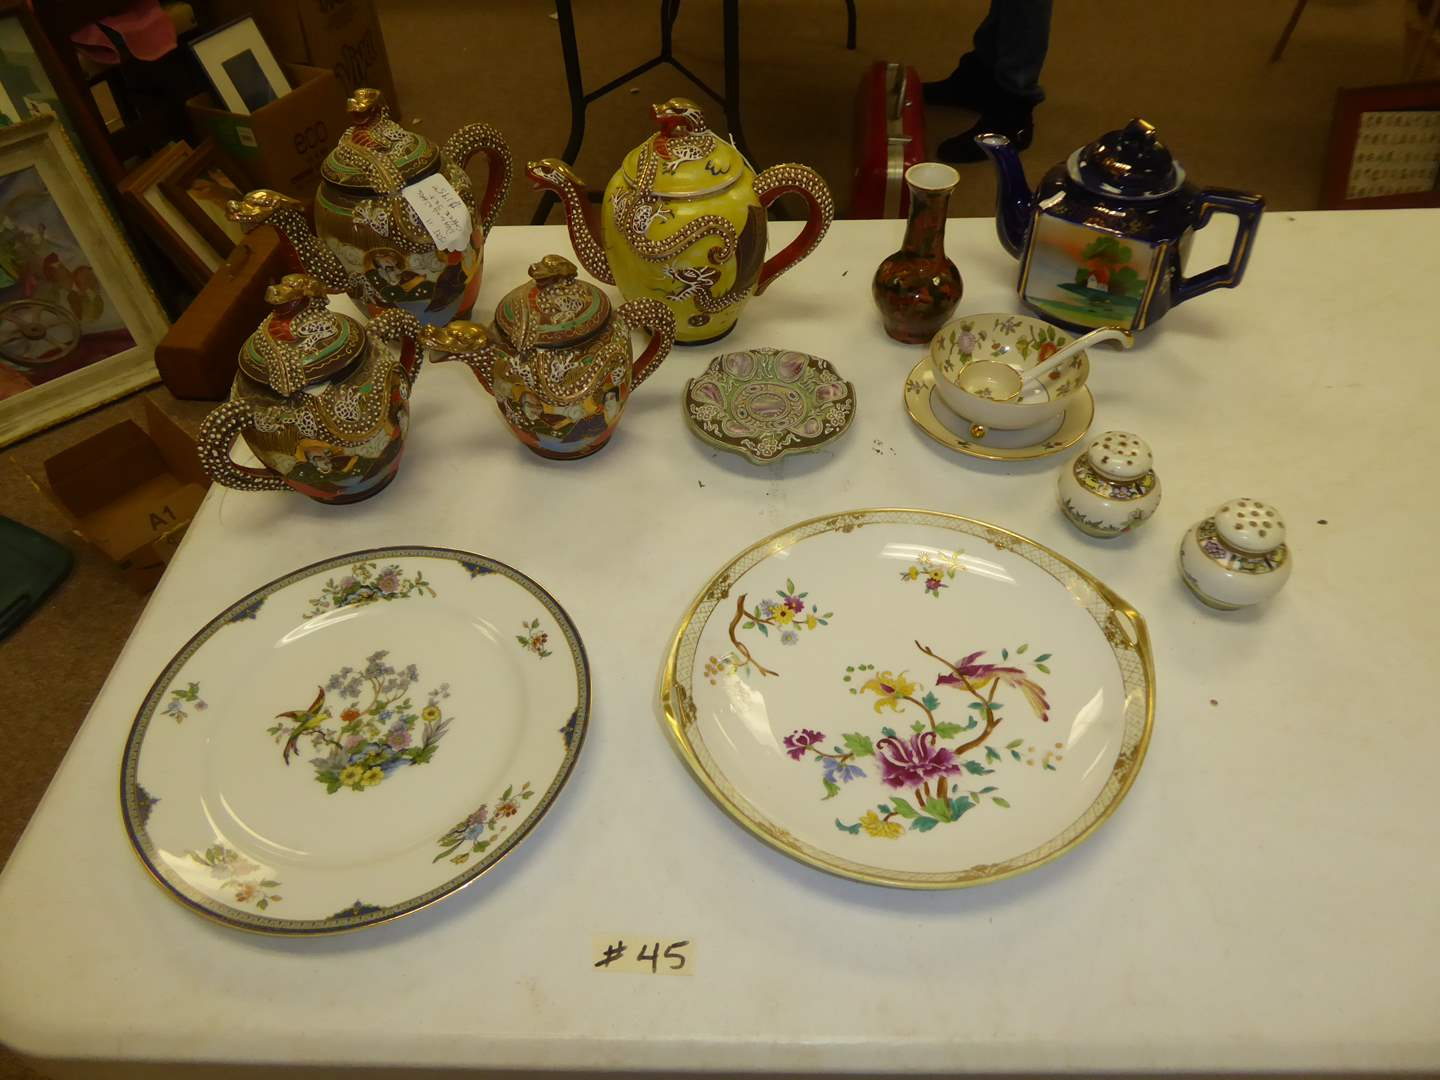 Lot # 45 - Dragonware Tea Pots, Antique Moriage Plate & Other Vintage China  (main image)